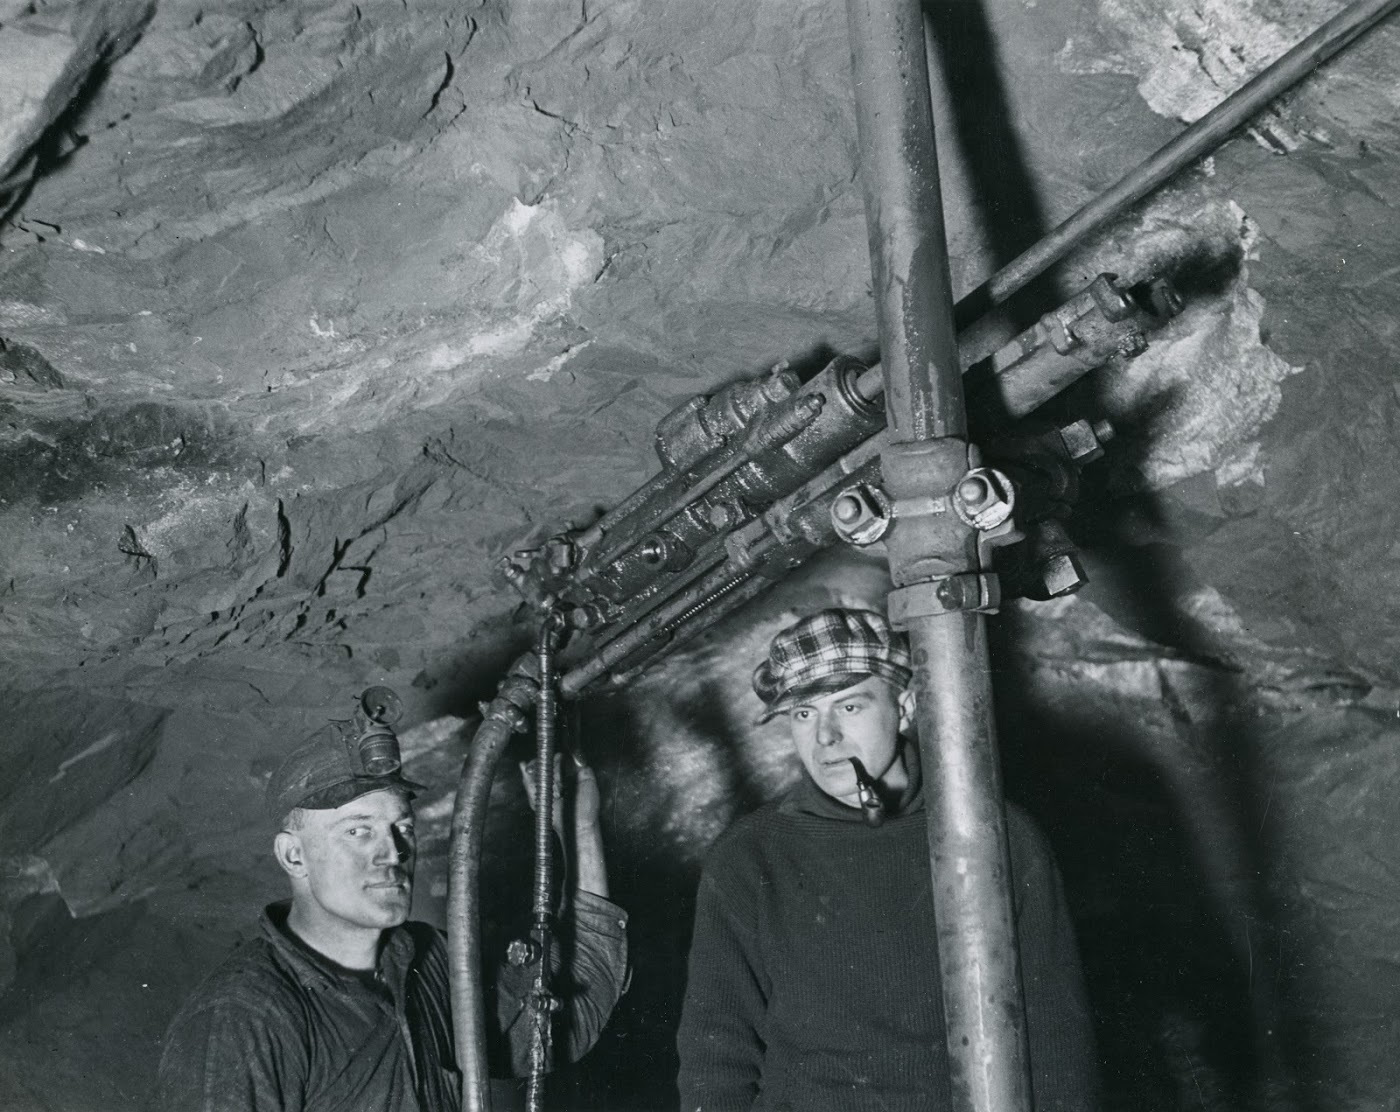 Photo 2309.0046: Two men in an unnamed mine, operating an early drill.